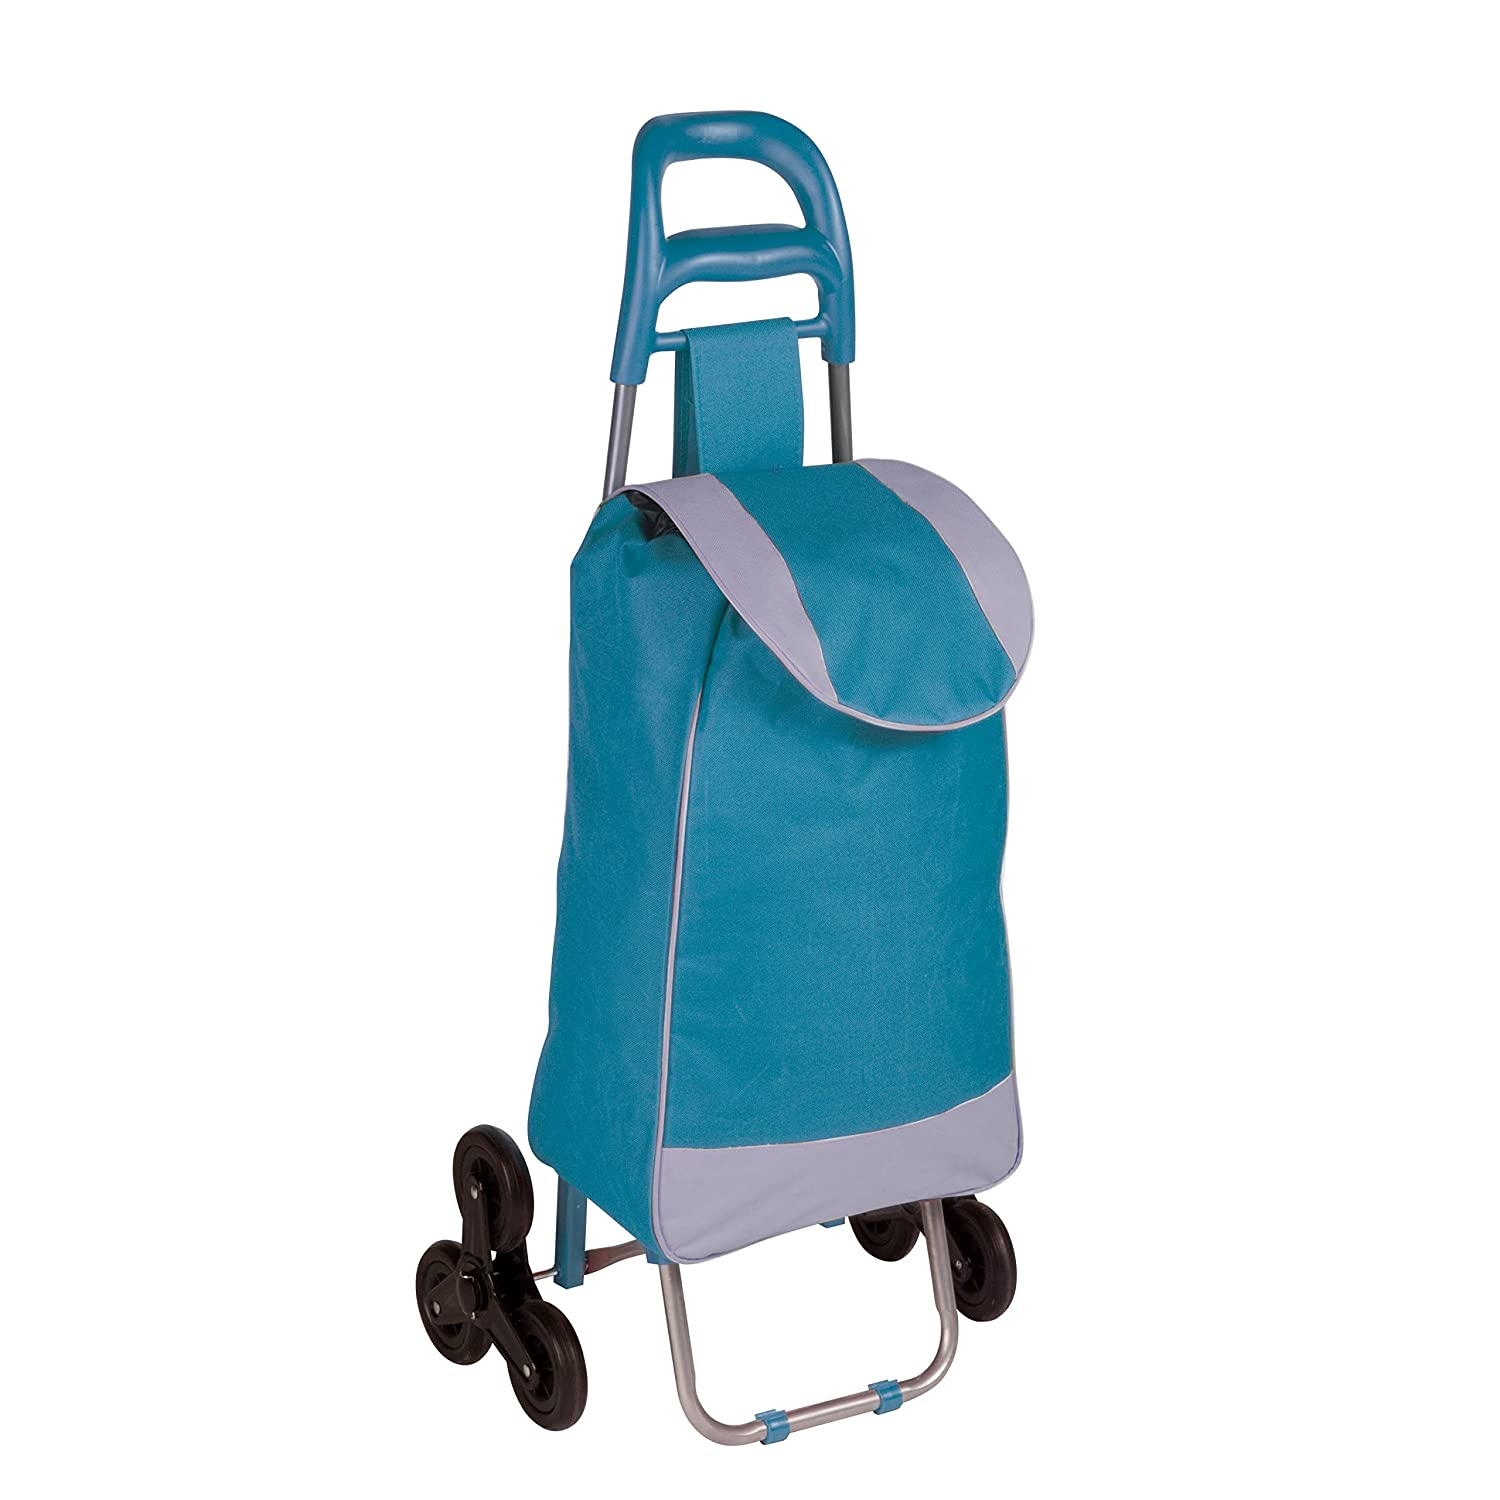 Honey-Can-Do CRT-03931 Large Rolling Knapsack Bag Cart with Wheels, Holds up to 40-Pounds, Blue